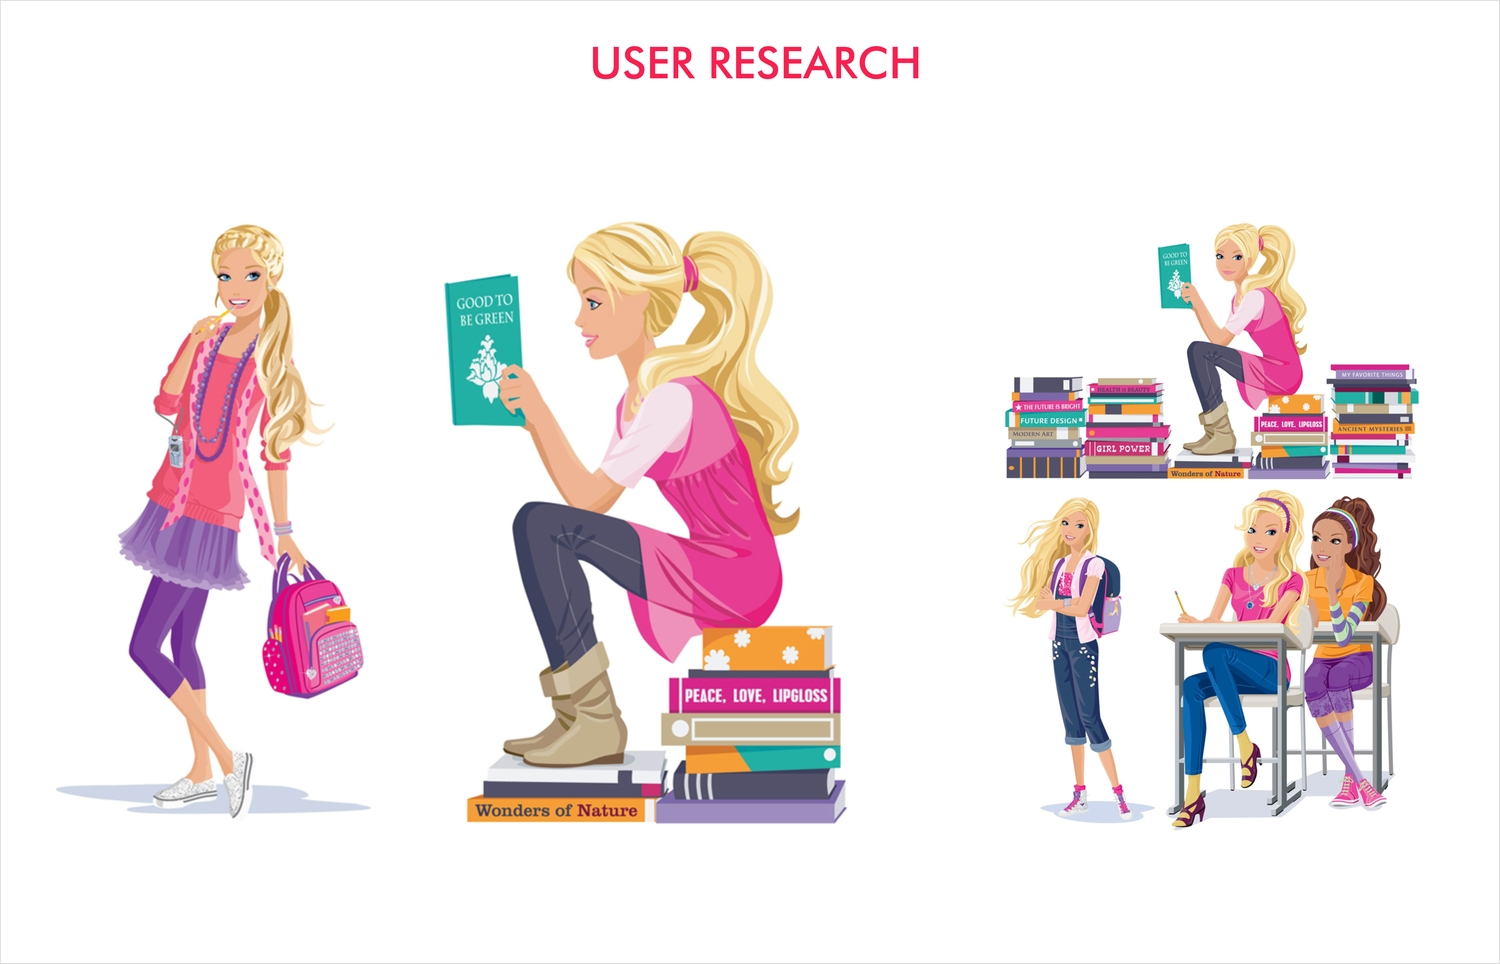 Secondary User Research